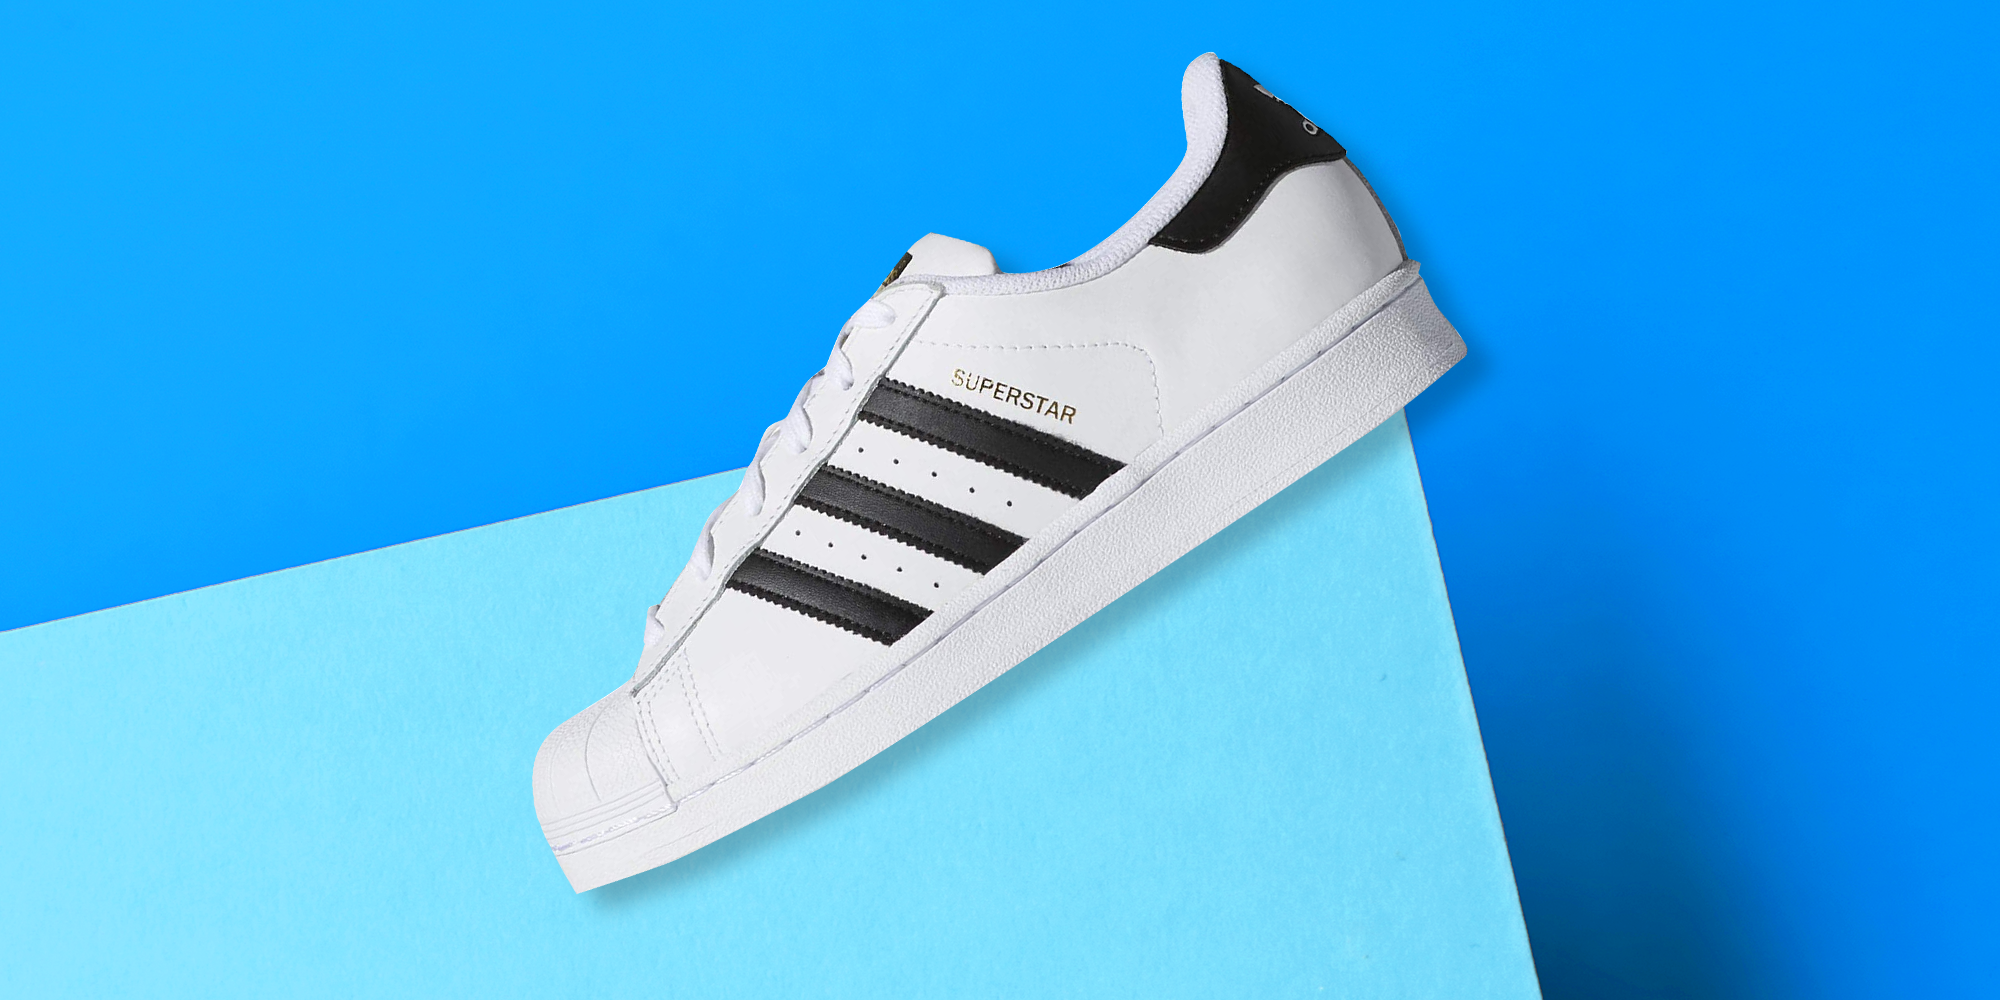 Adidas Superstar Sneakers Are On Sale On Amazon For 25 Percent Off Right Now